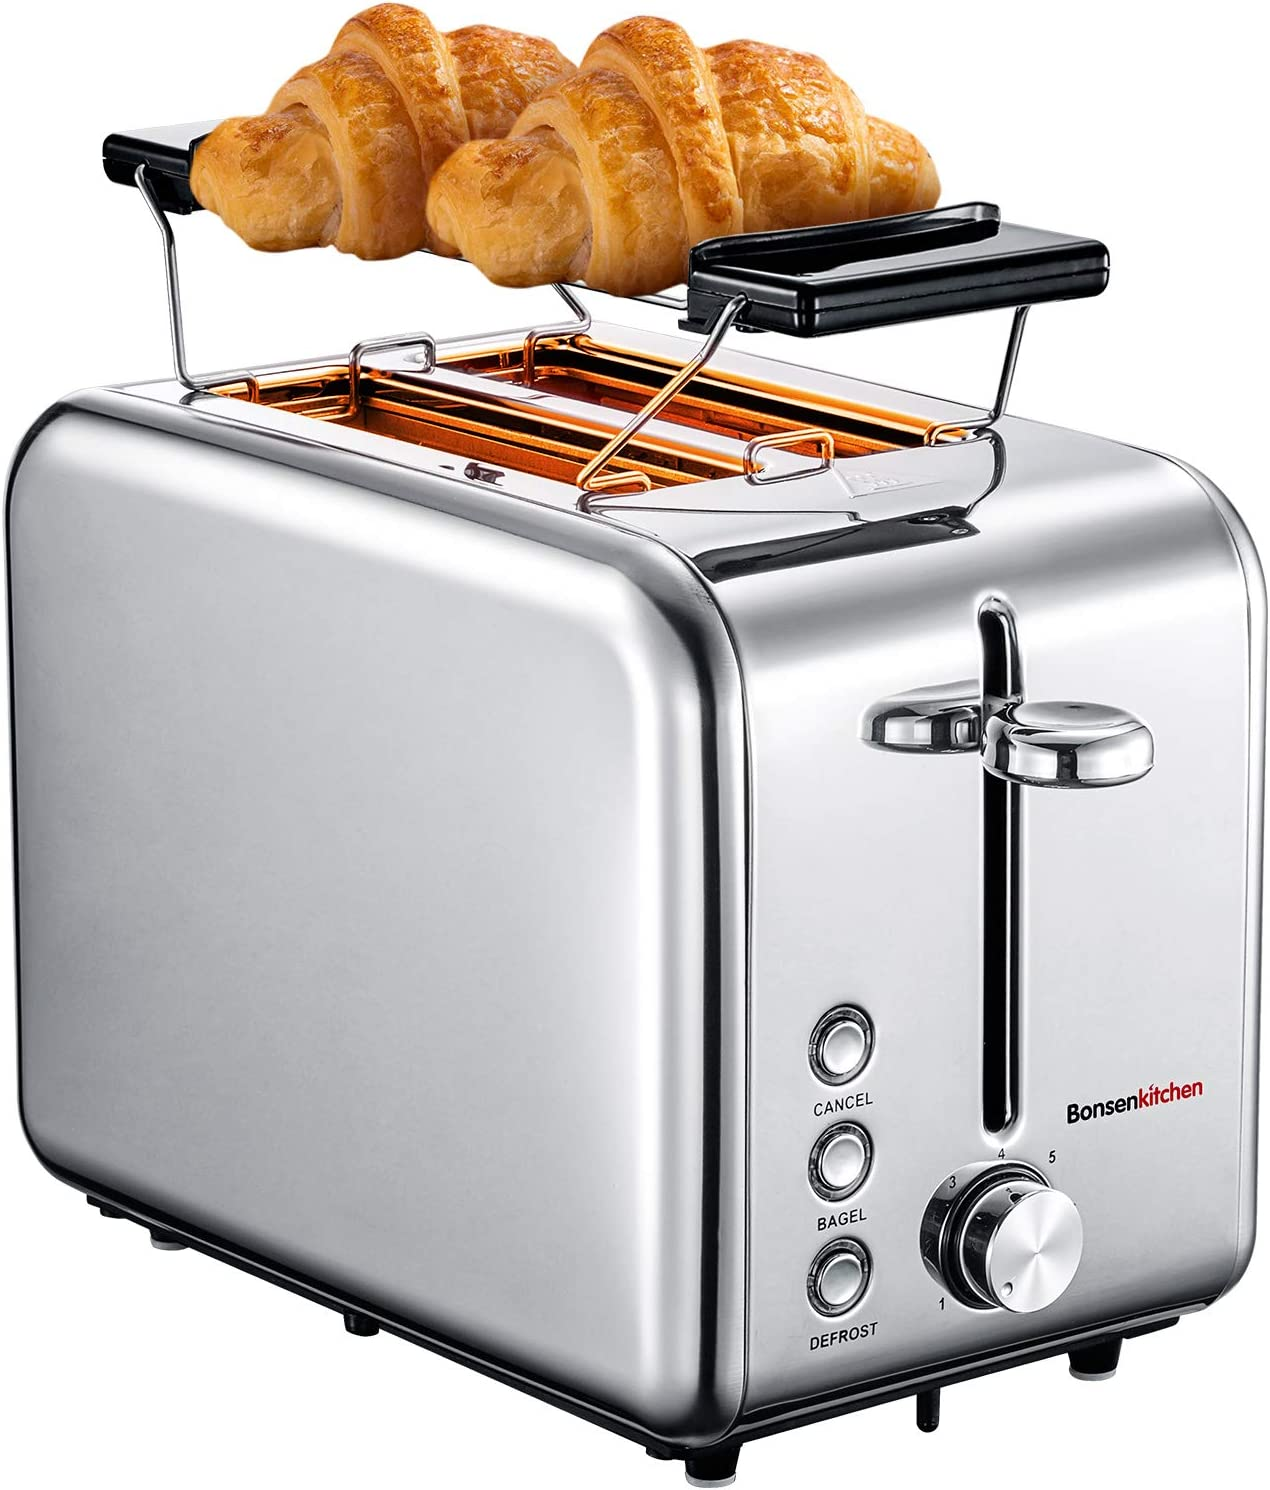 Bonsenkitchen 2-Slice Extra-Wide Slot Toaster with Defrost/Bagel/Cancel Function, 7 Shade Setting, Stainless Steel Bagel Toaster (Silver)